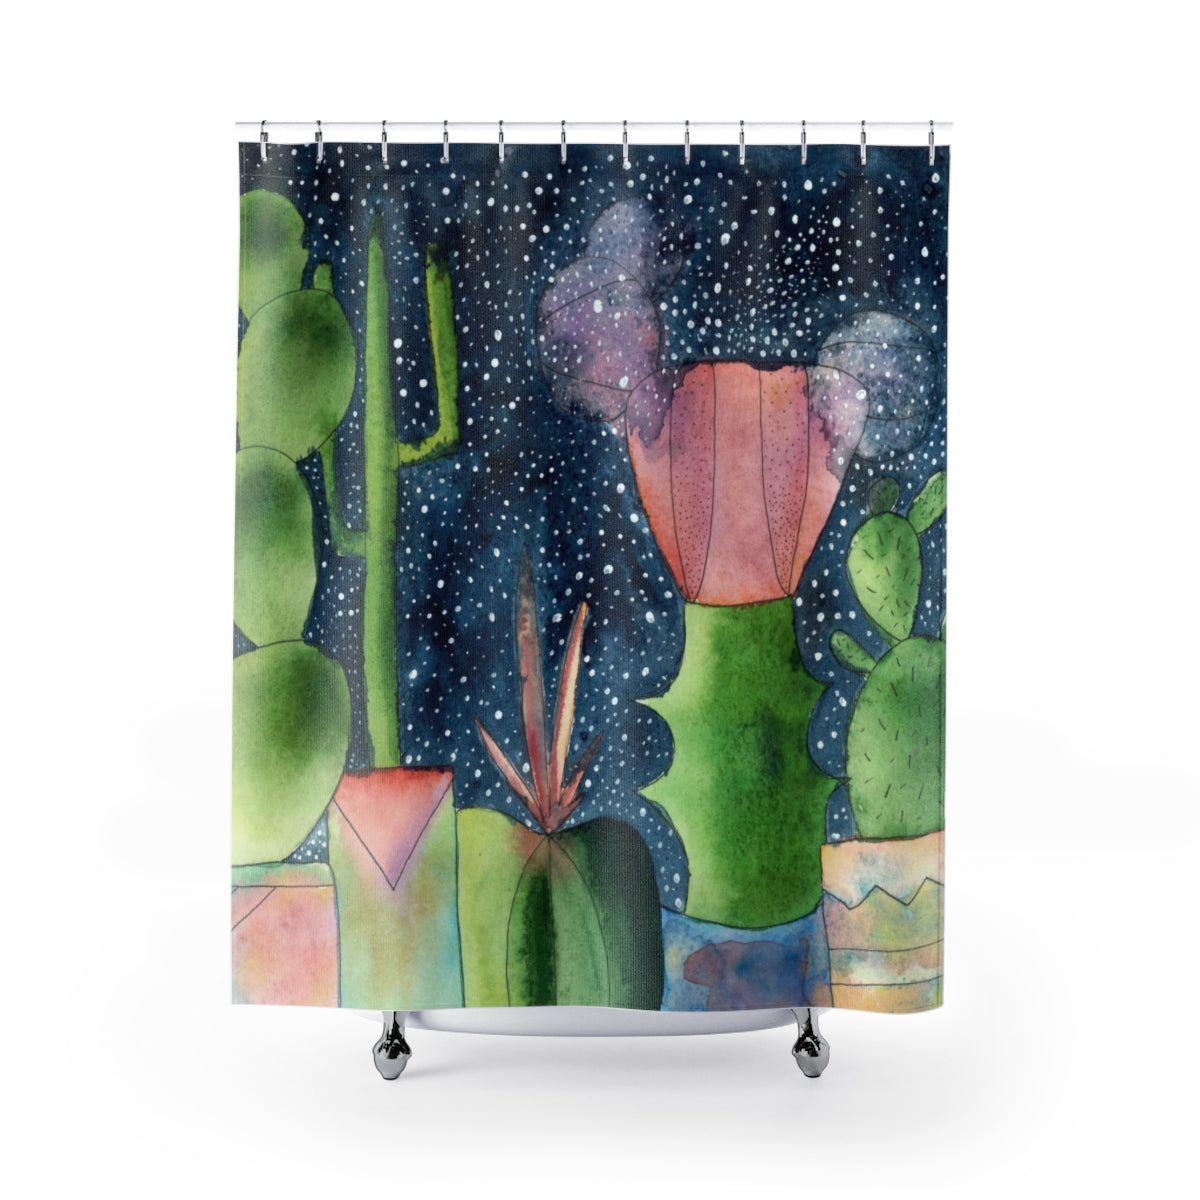 Ruby Ball Cactus Watercolour Shower Curtain, Home Decor - Gravitational Pull Art